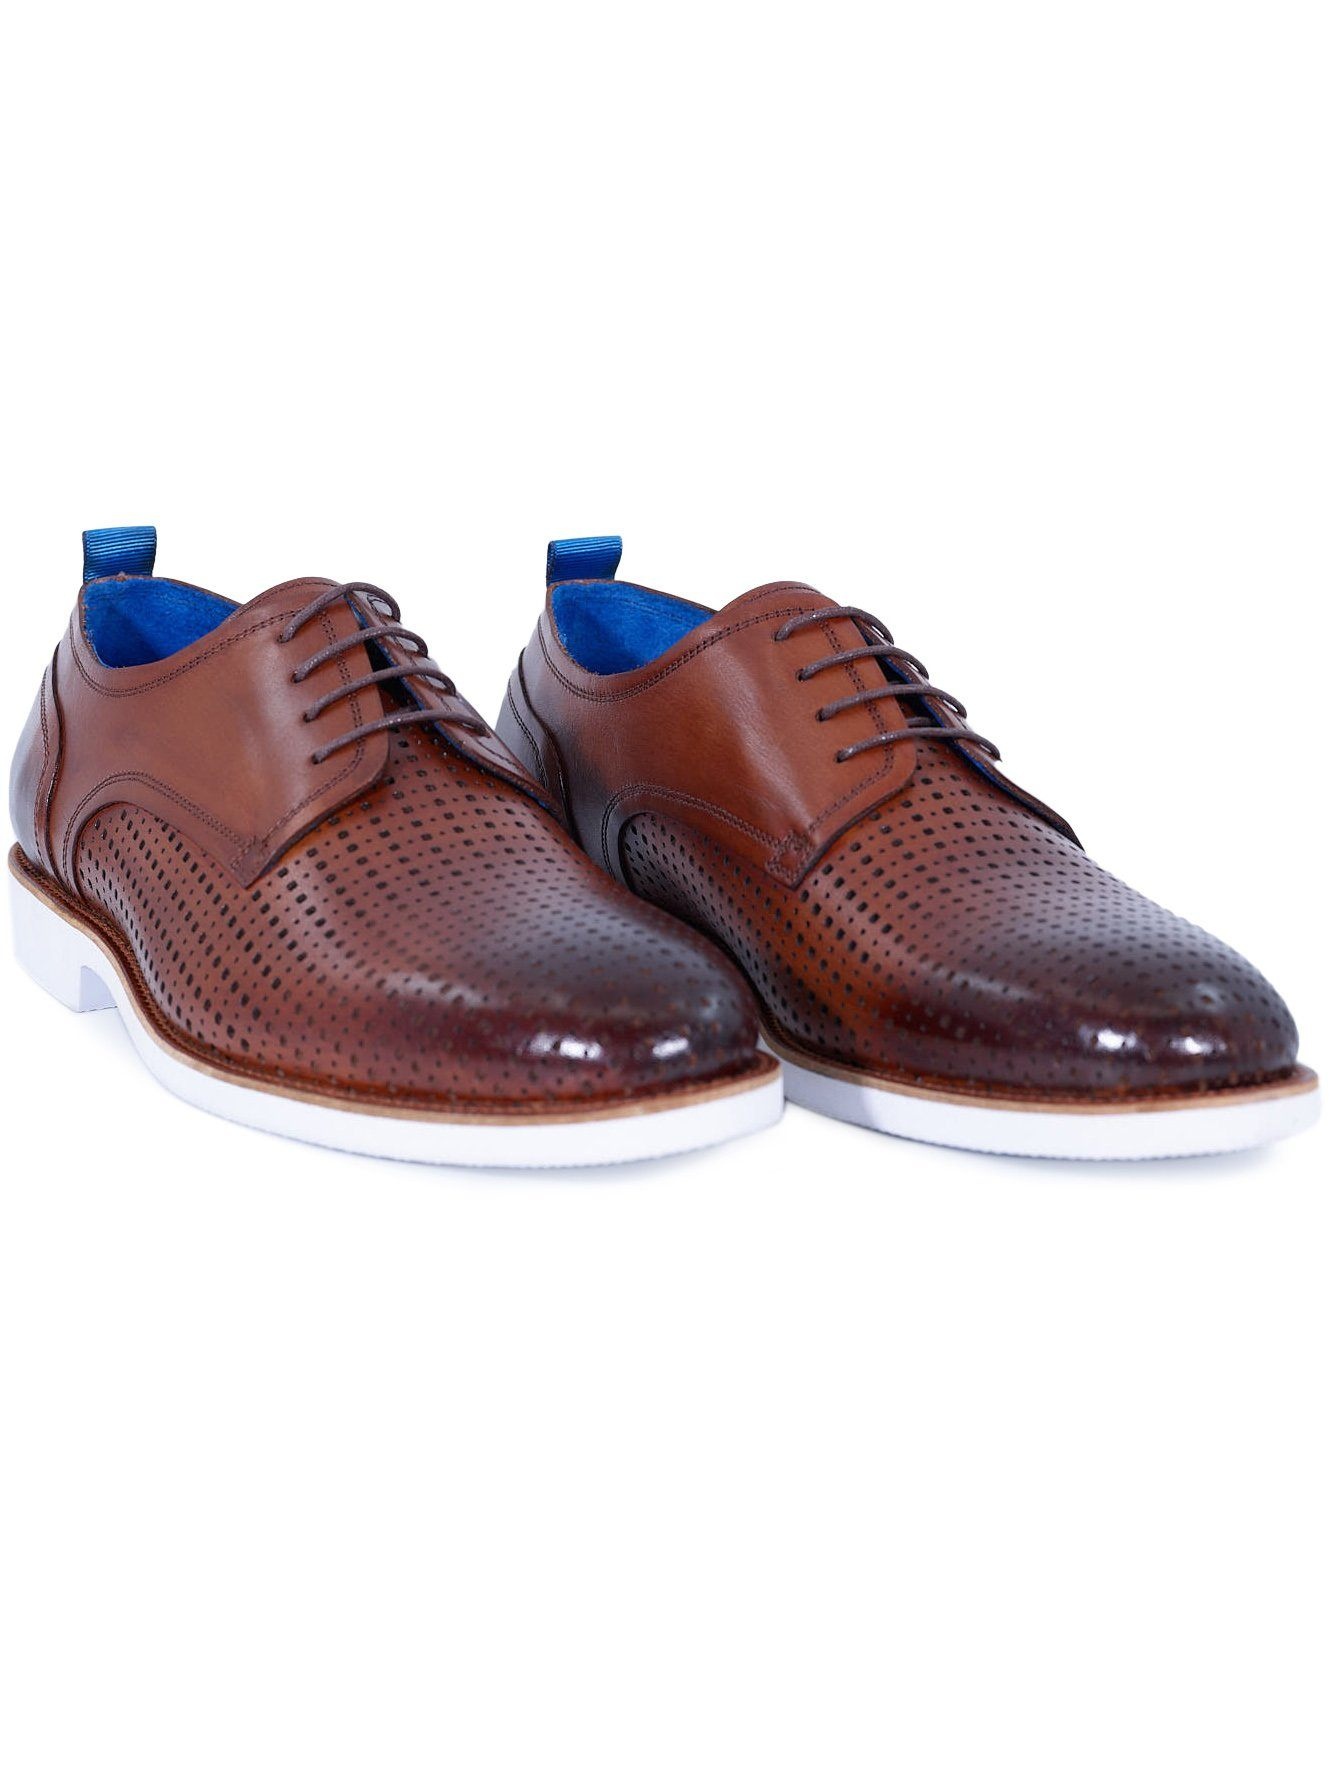 Classic Perforated Brown